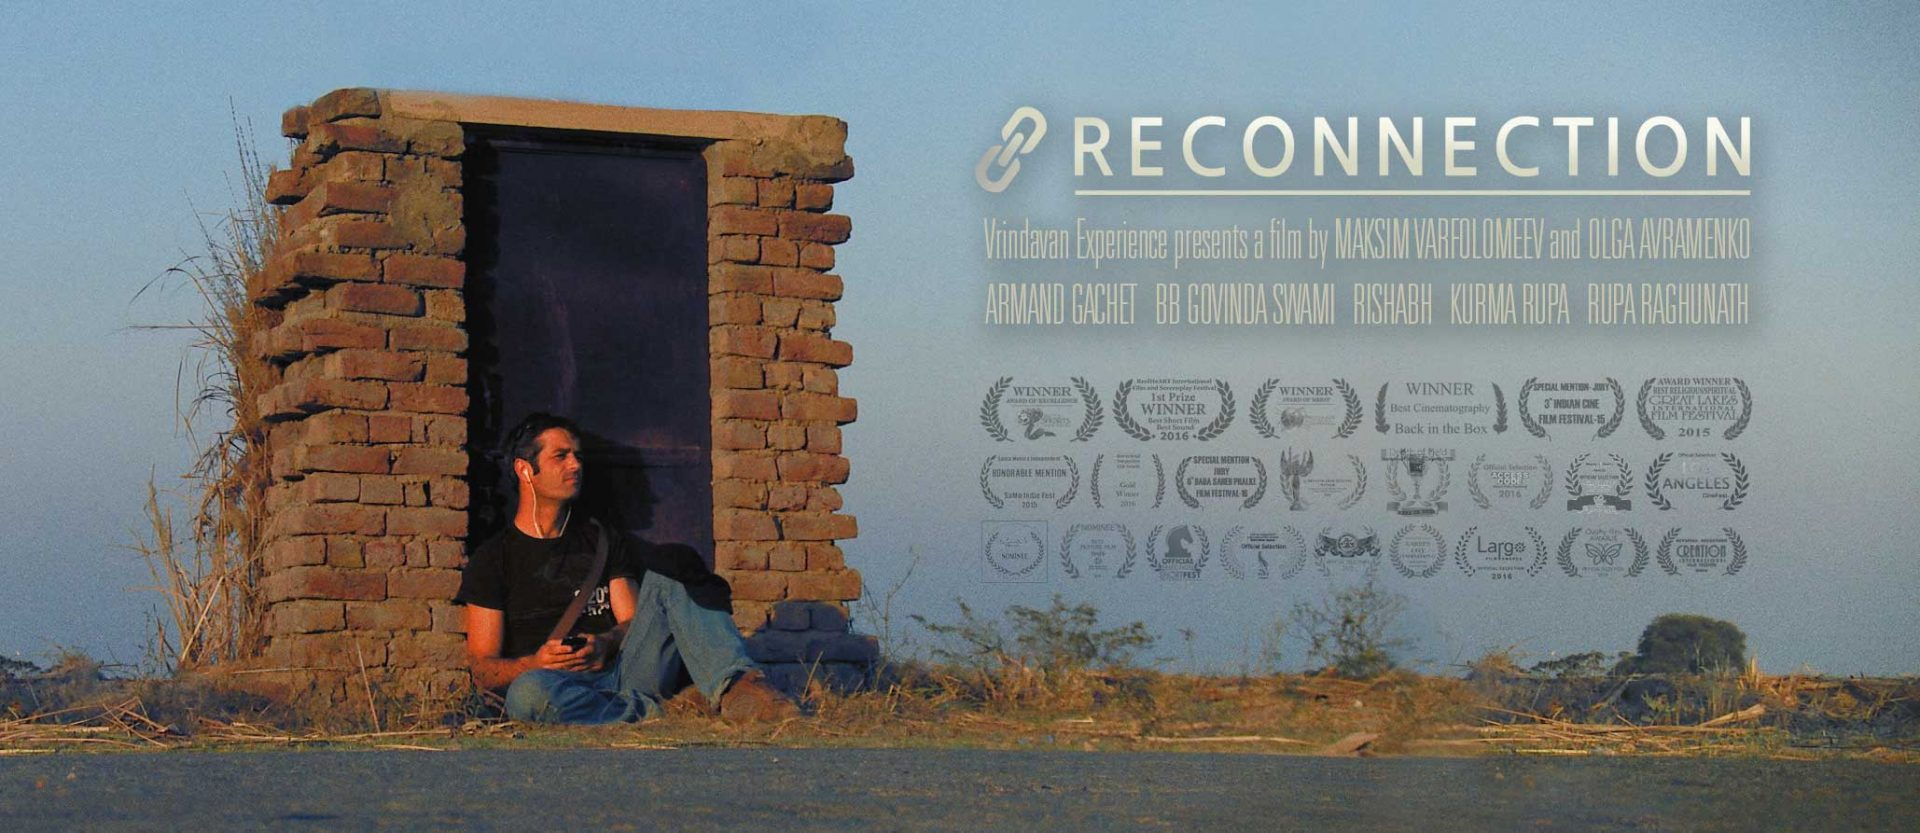 Banner of 'Reconnection', a multi-award winning film